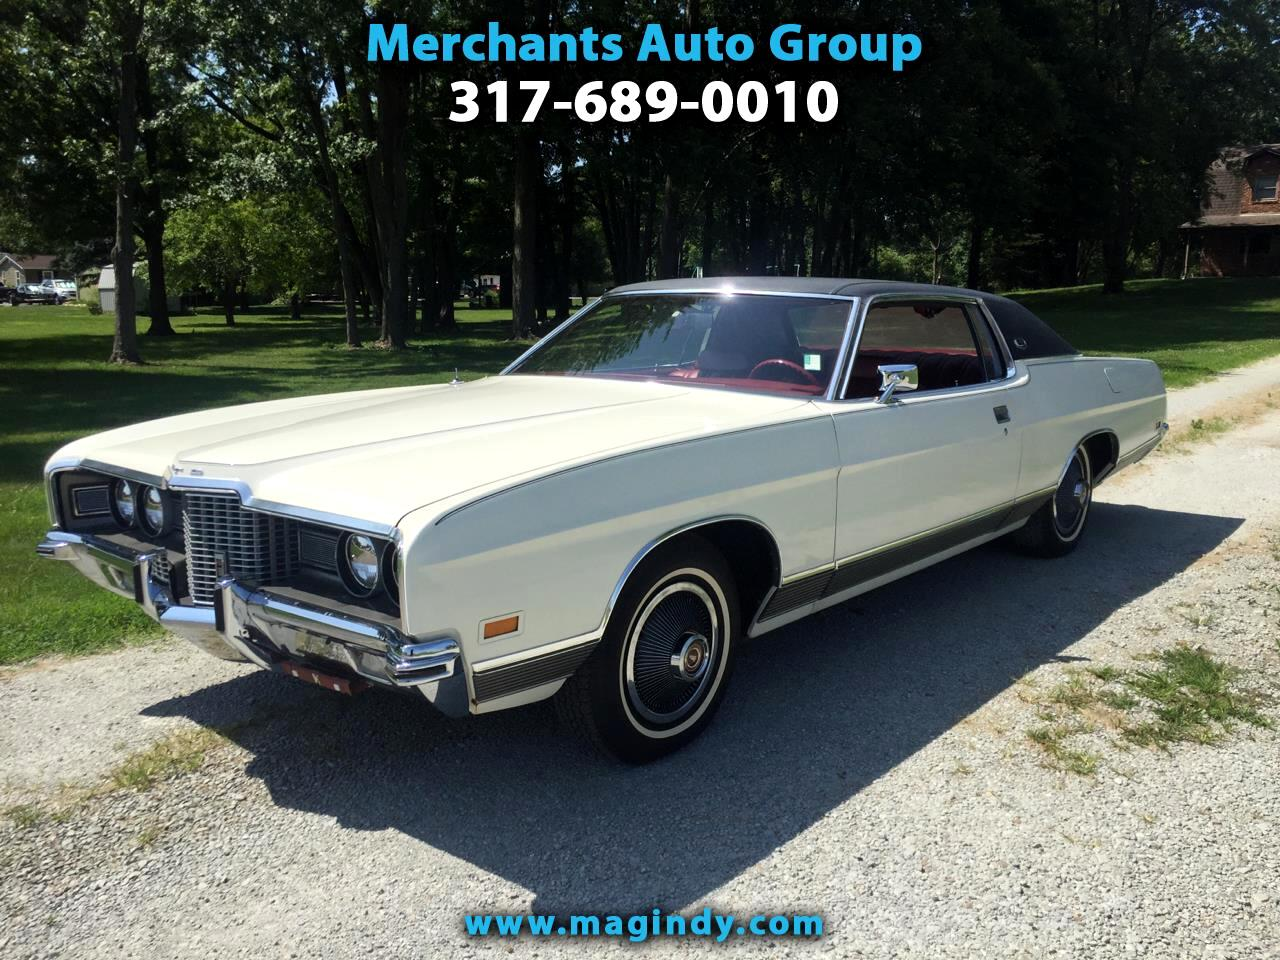 1971 Ford LTD 2dr Coupe